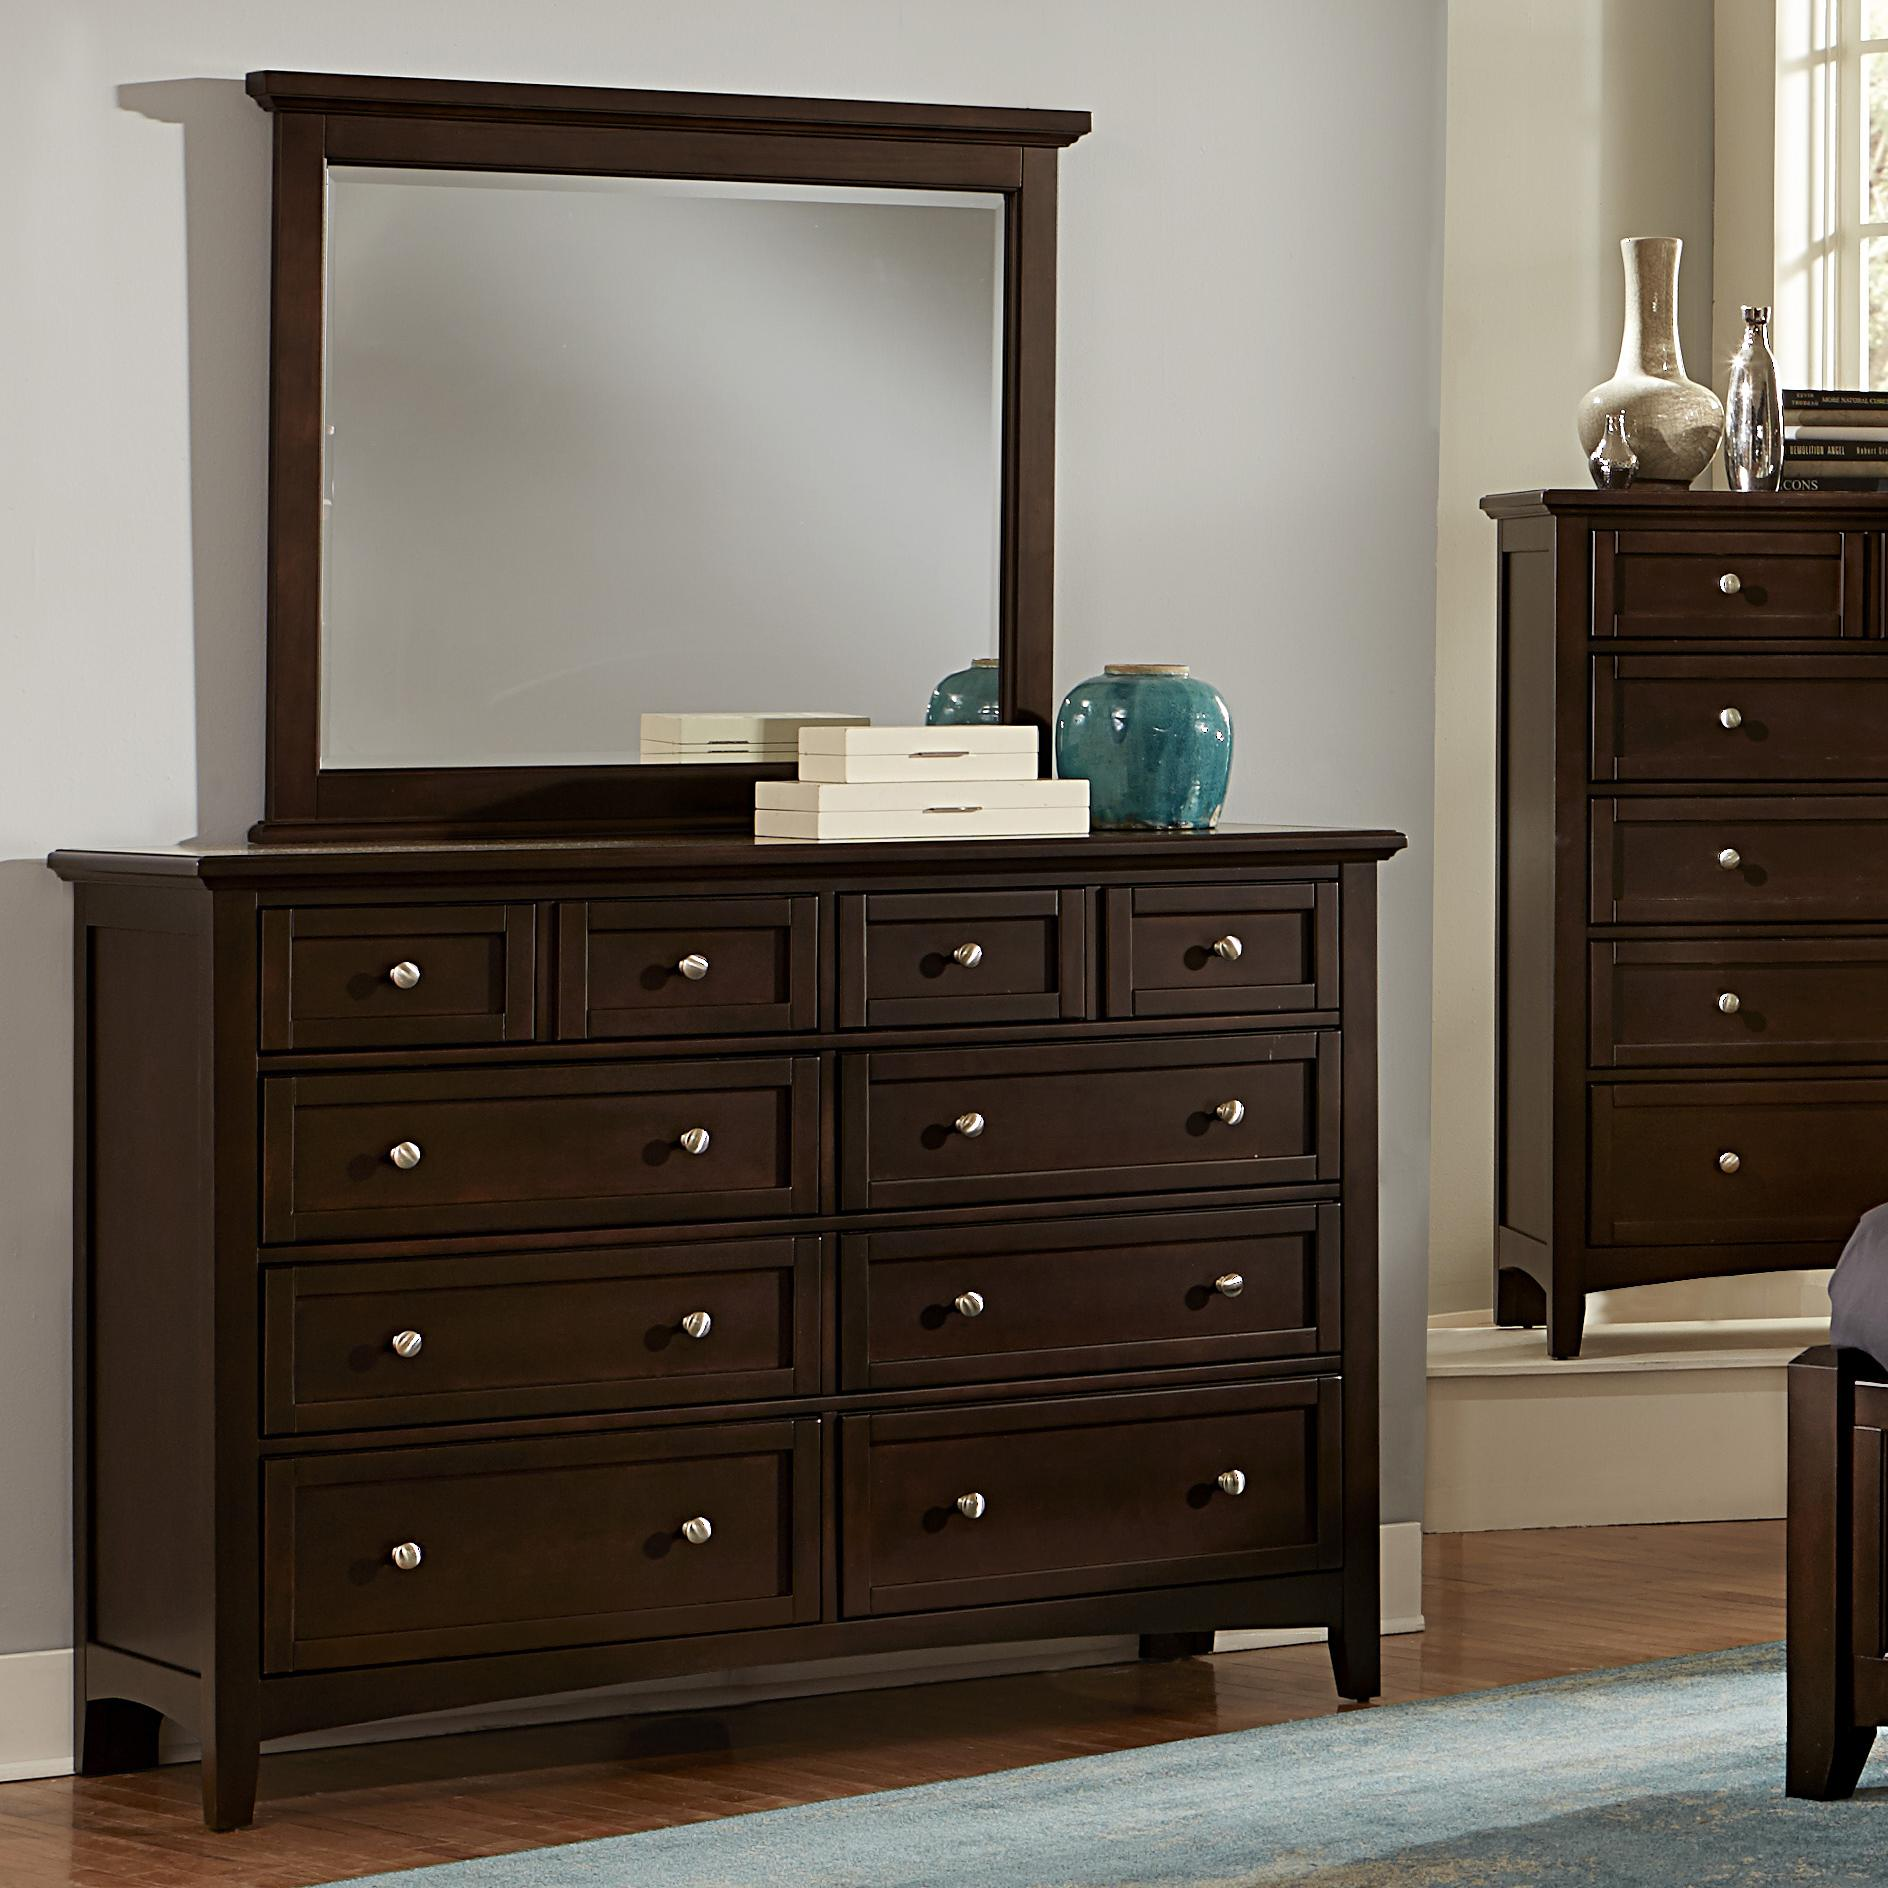 Bunkhouse Triple Dresser & Landscape Mirror by Vaughan-Bassett at Crowley Furniture & Mattress